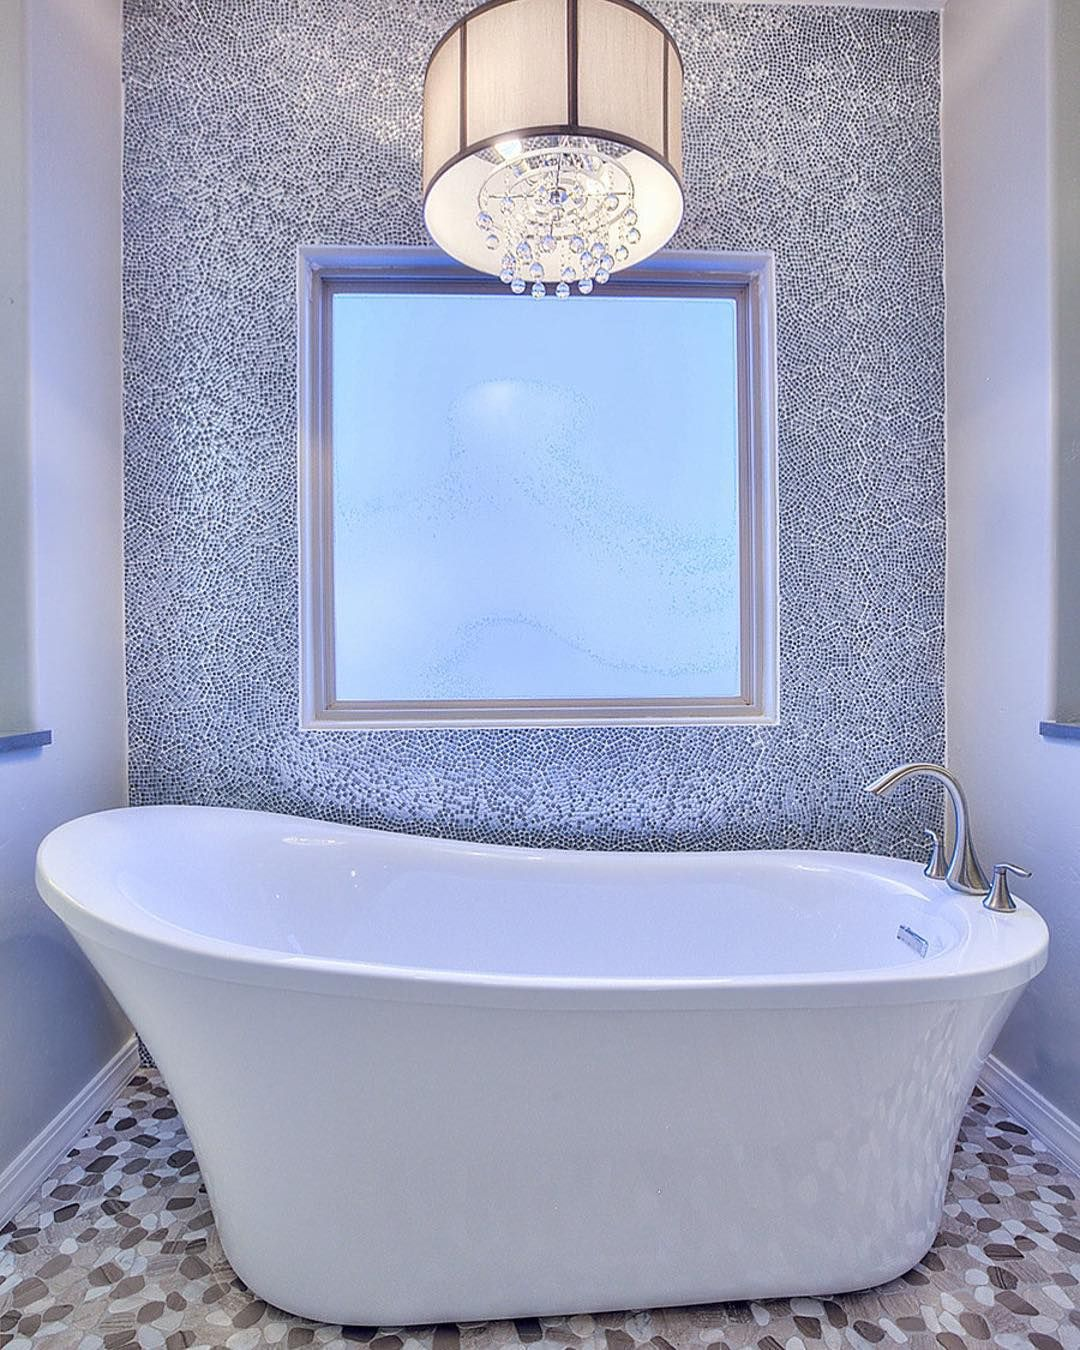 TileTuesday: Ground a modern freestanding tub with a pebbled floor ...